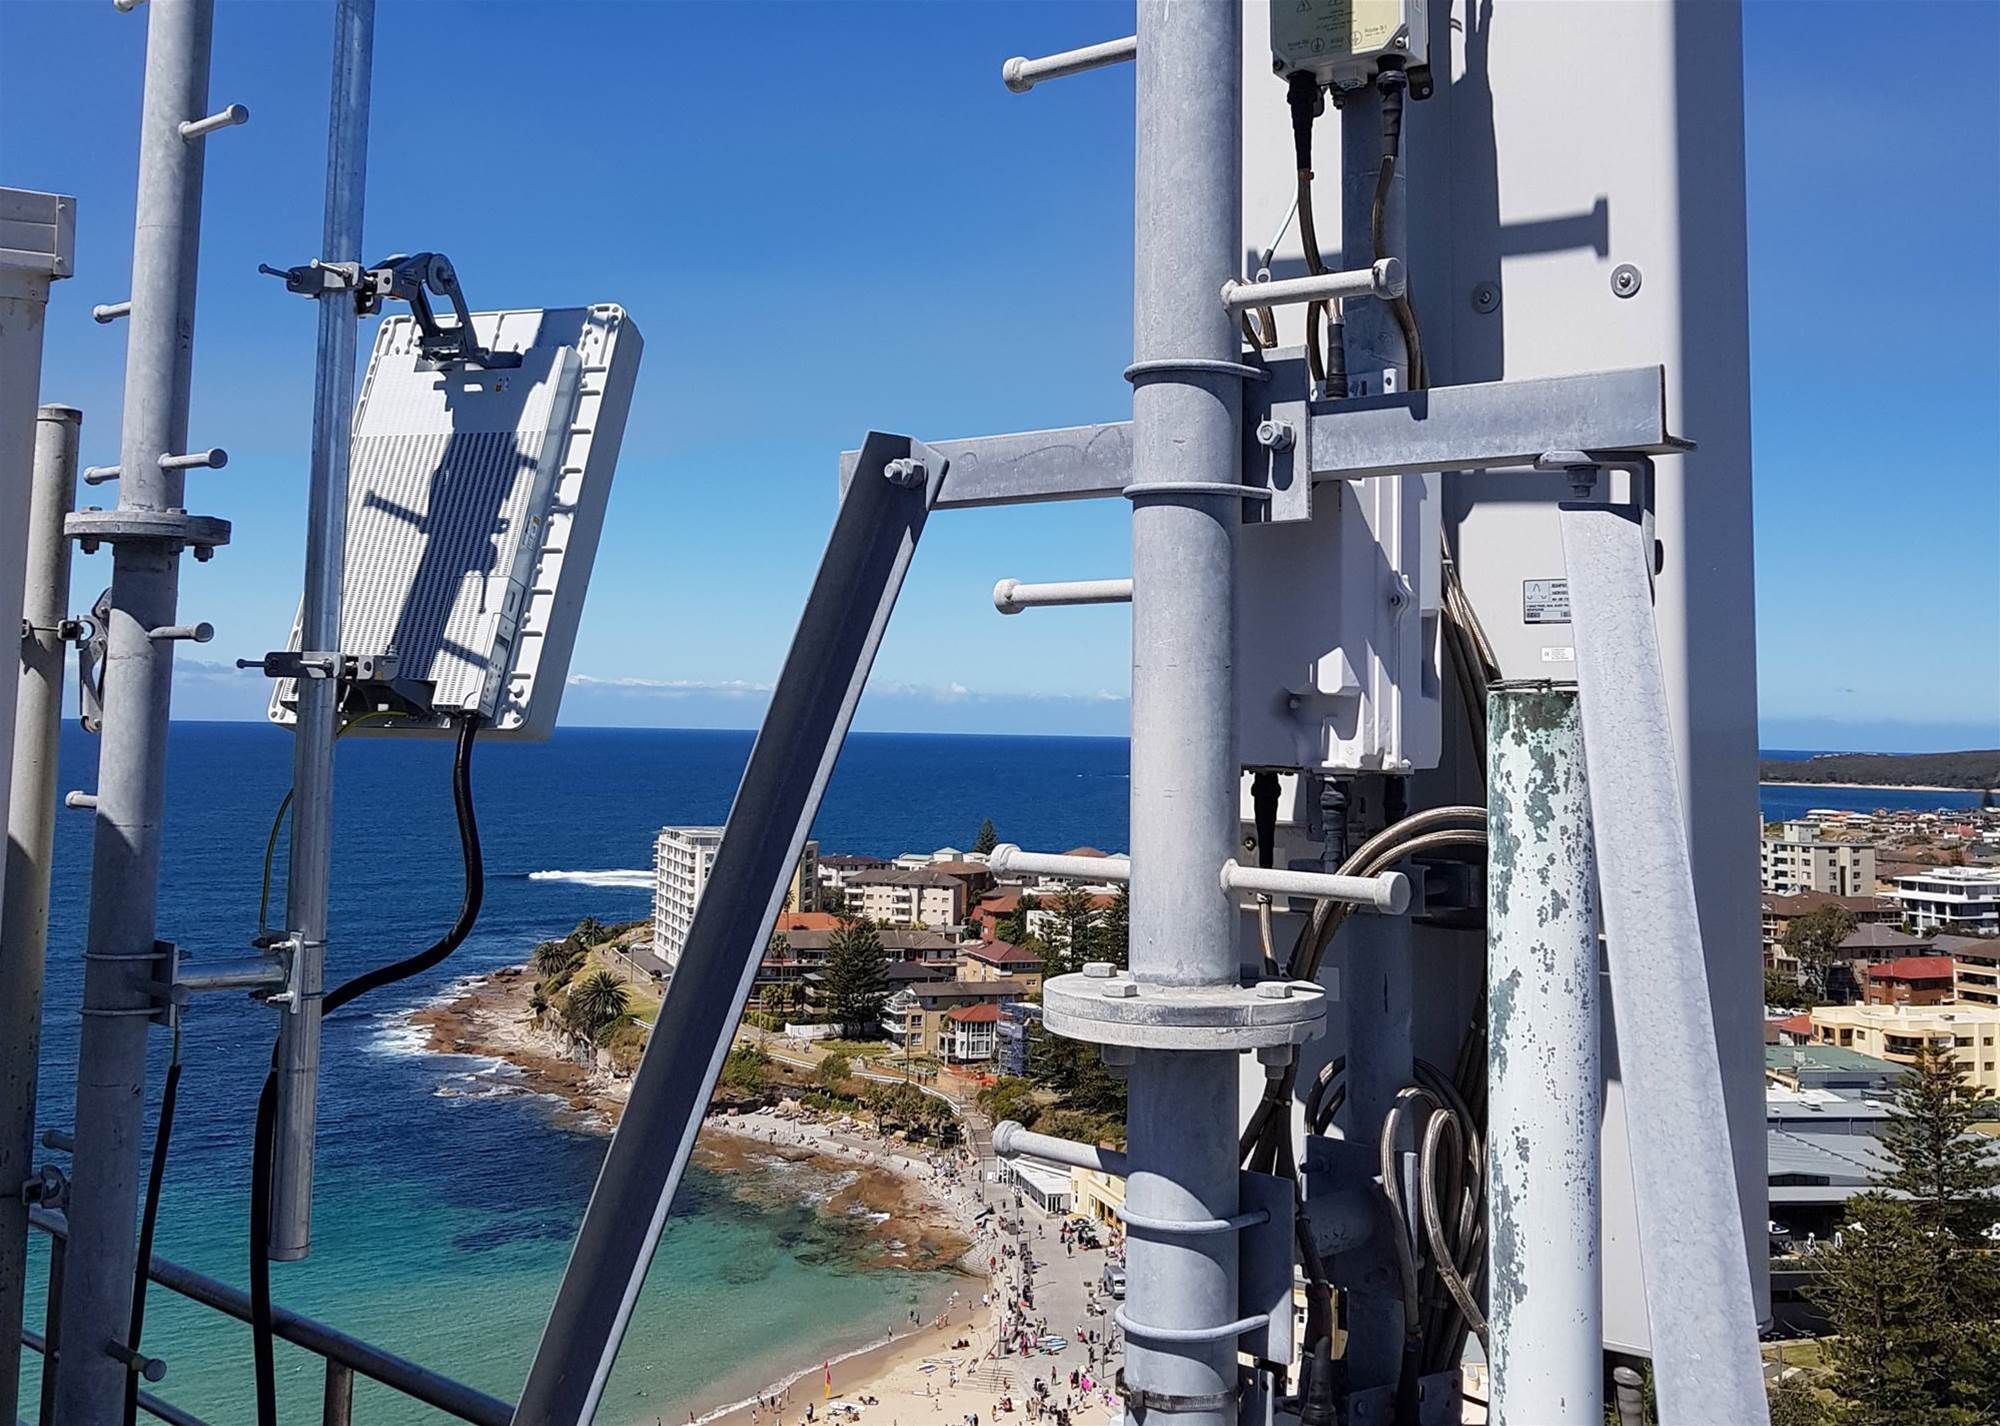 Vodafone to upgrade cell sites with massive MIMO